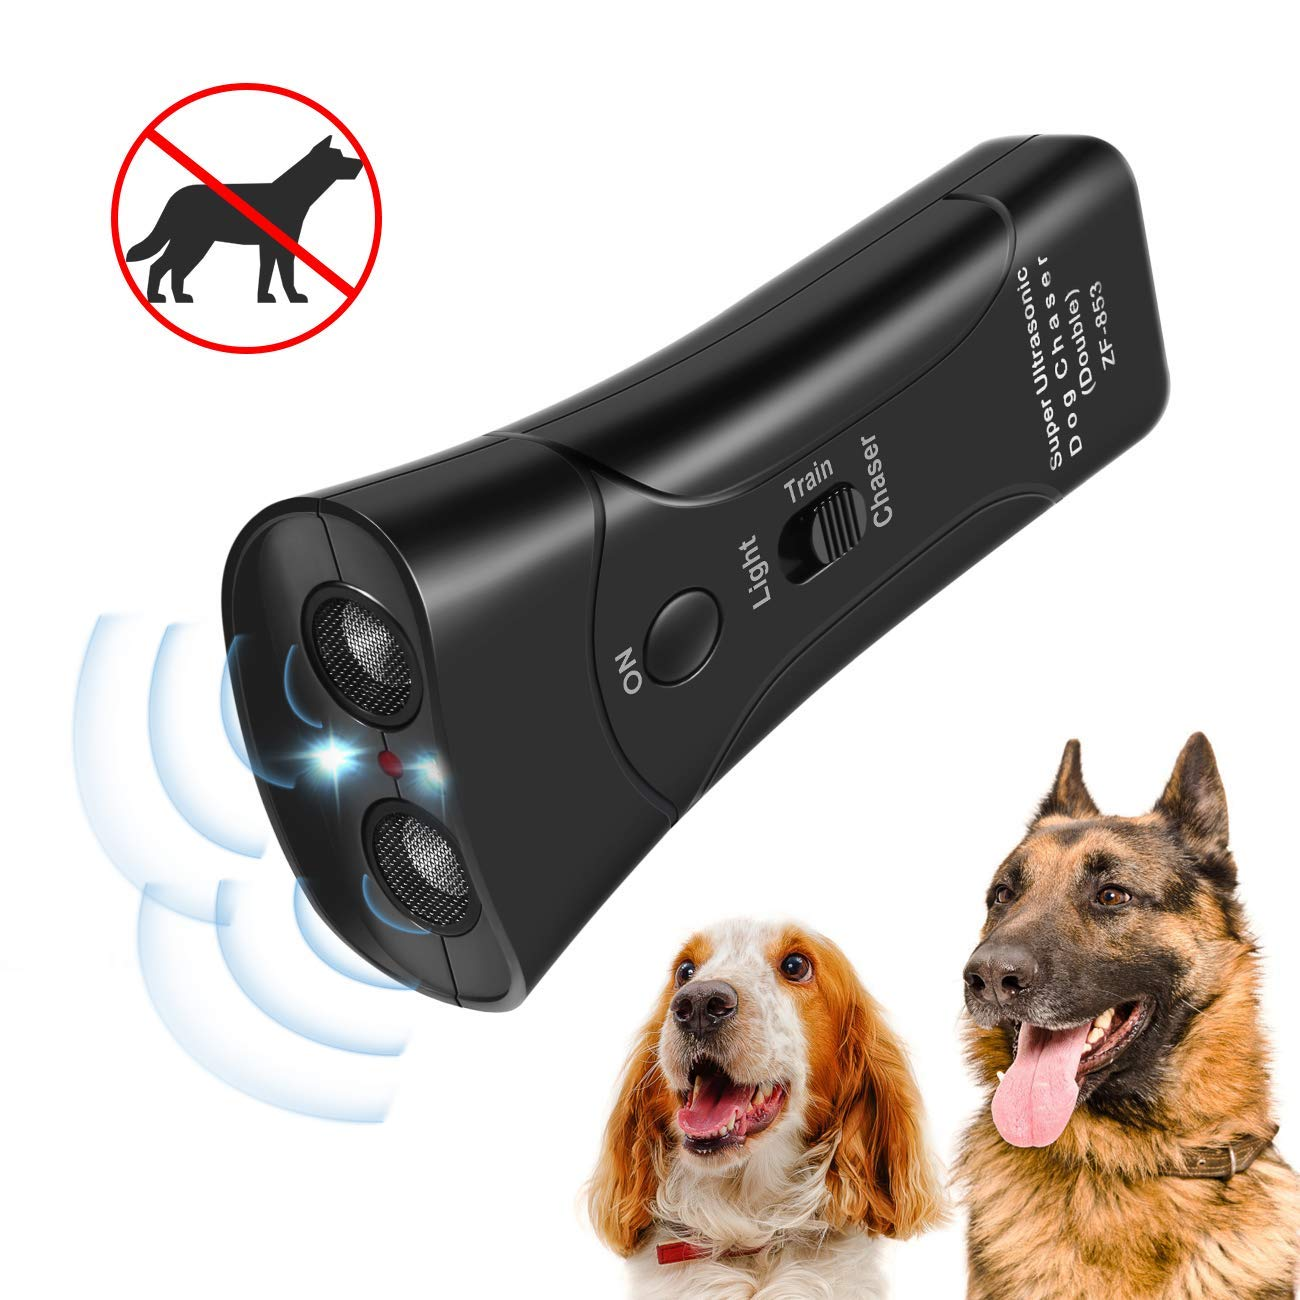 InooSky Anti Barking Handheld 3 in 1 Pet LED Ultrasonic Dog Trainer Device - Electronic Dog Deterrent/Training Tool/Stop Barking by Inoosky